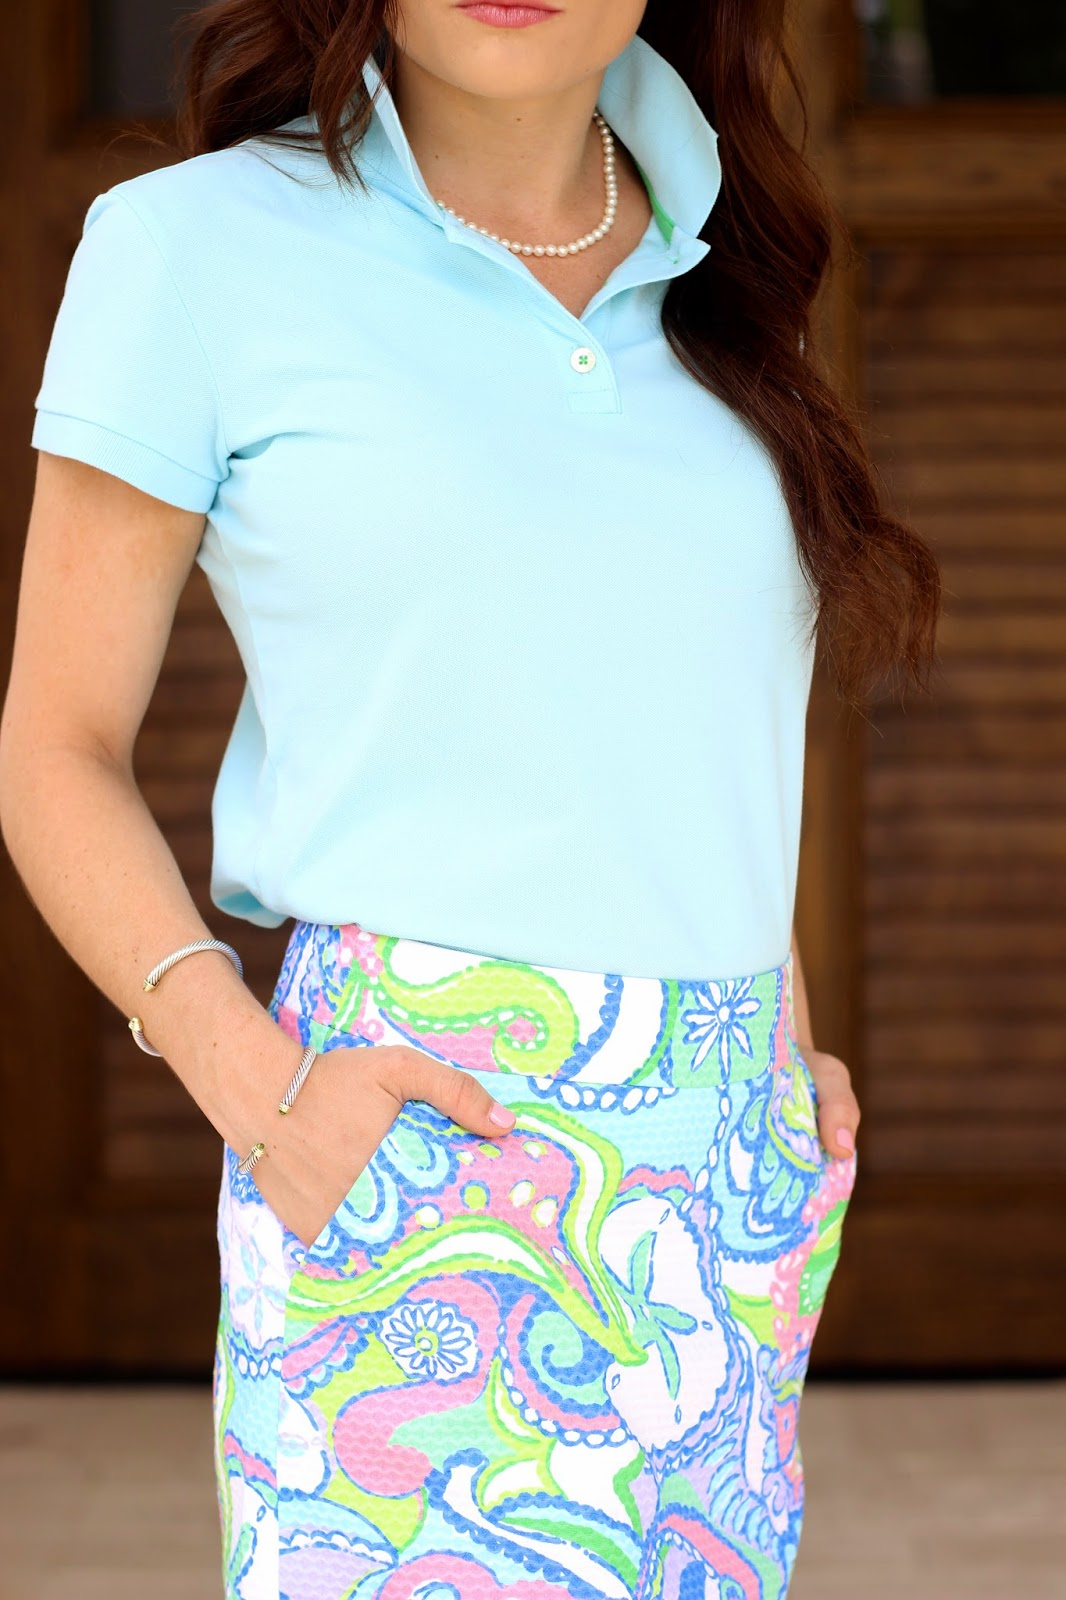 Preppy Lilly Pulitzer golf outfit